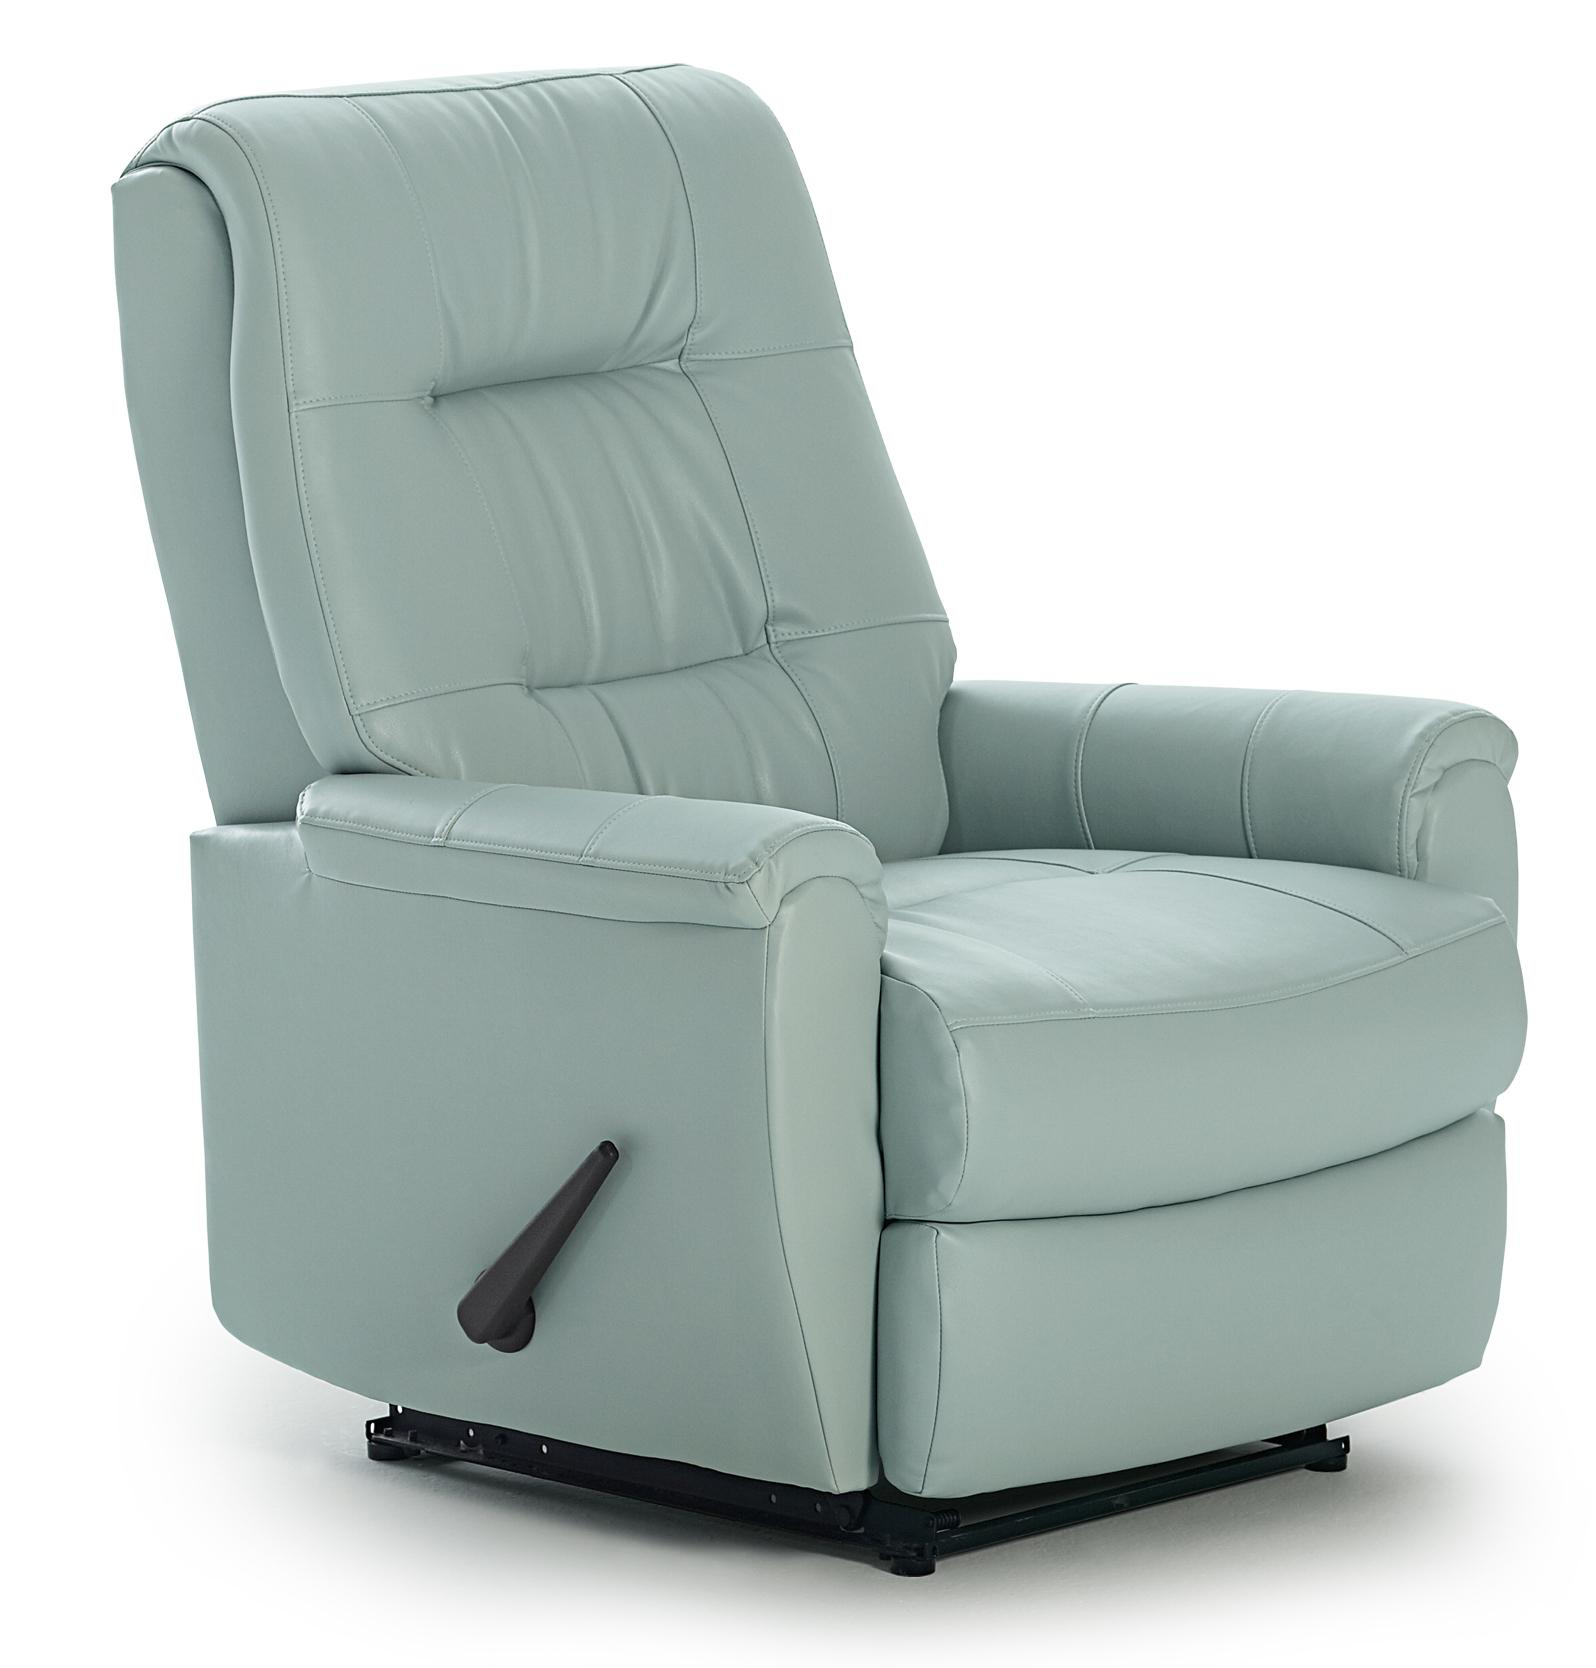 Leather Swivel Rocker Recliner And Its Benefits | In Decker Ii Fabric Swivel Rocker Recliners (Image 14 of 25)